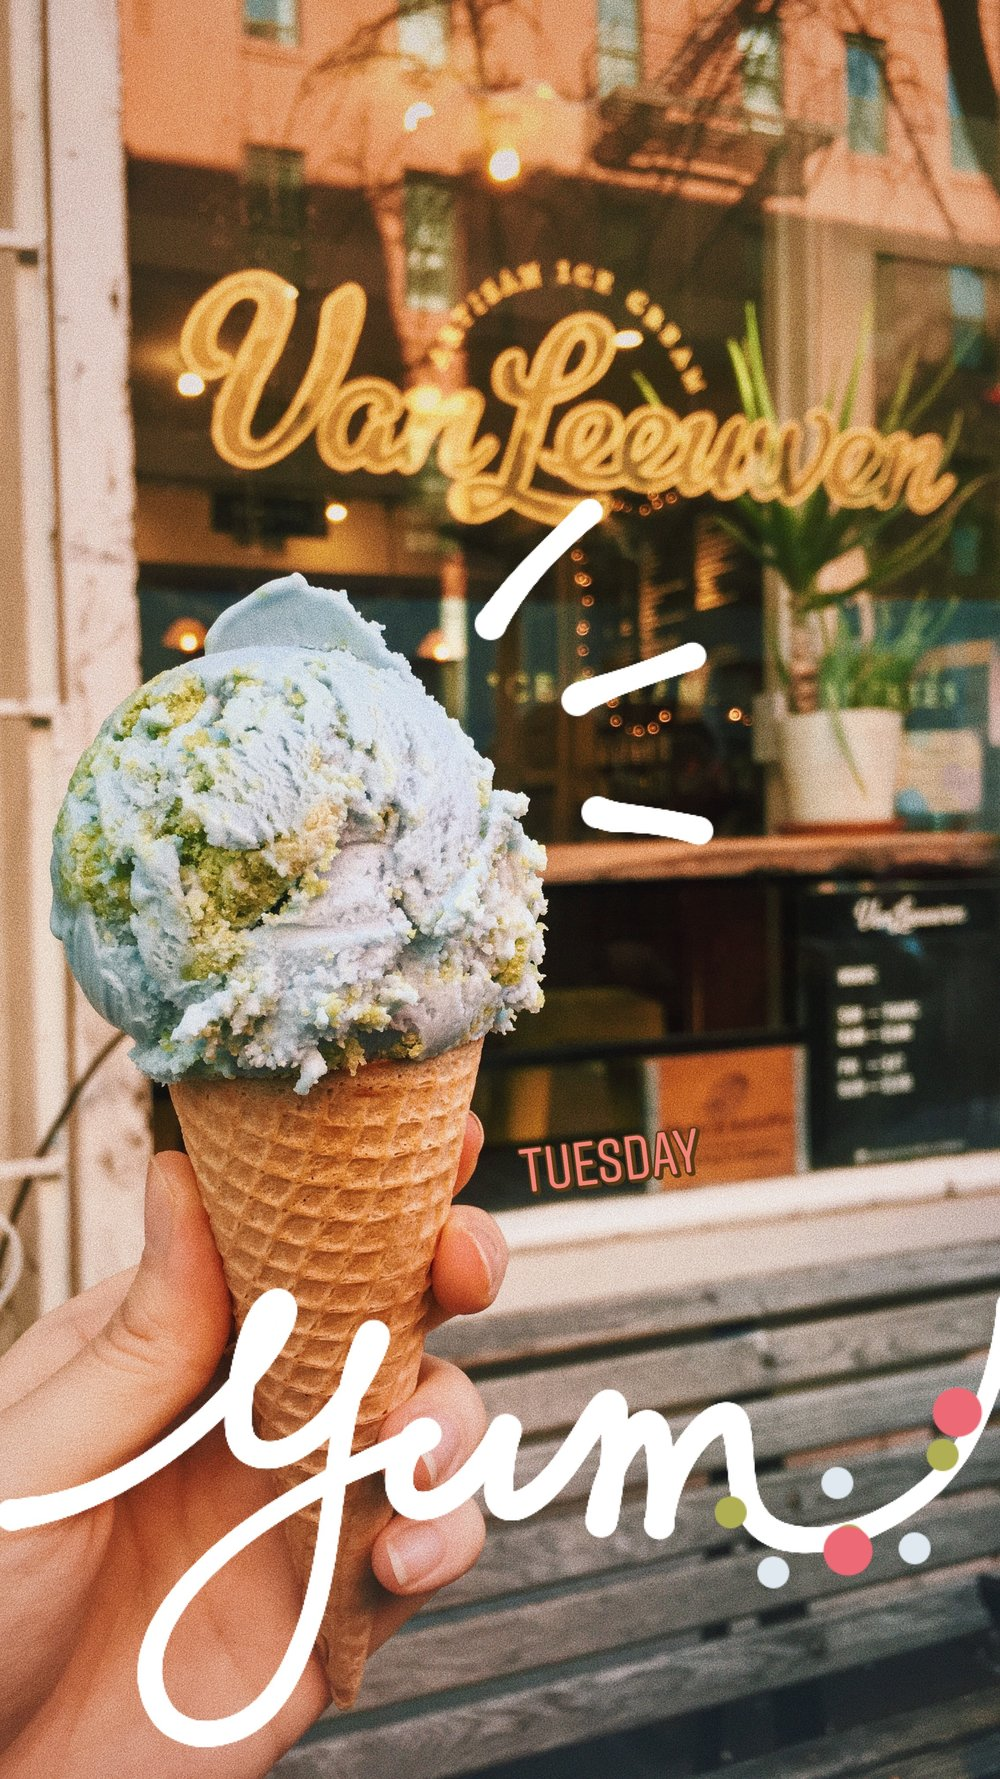 planet earth ice cream at Van Leeuwen